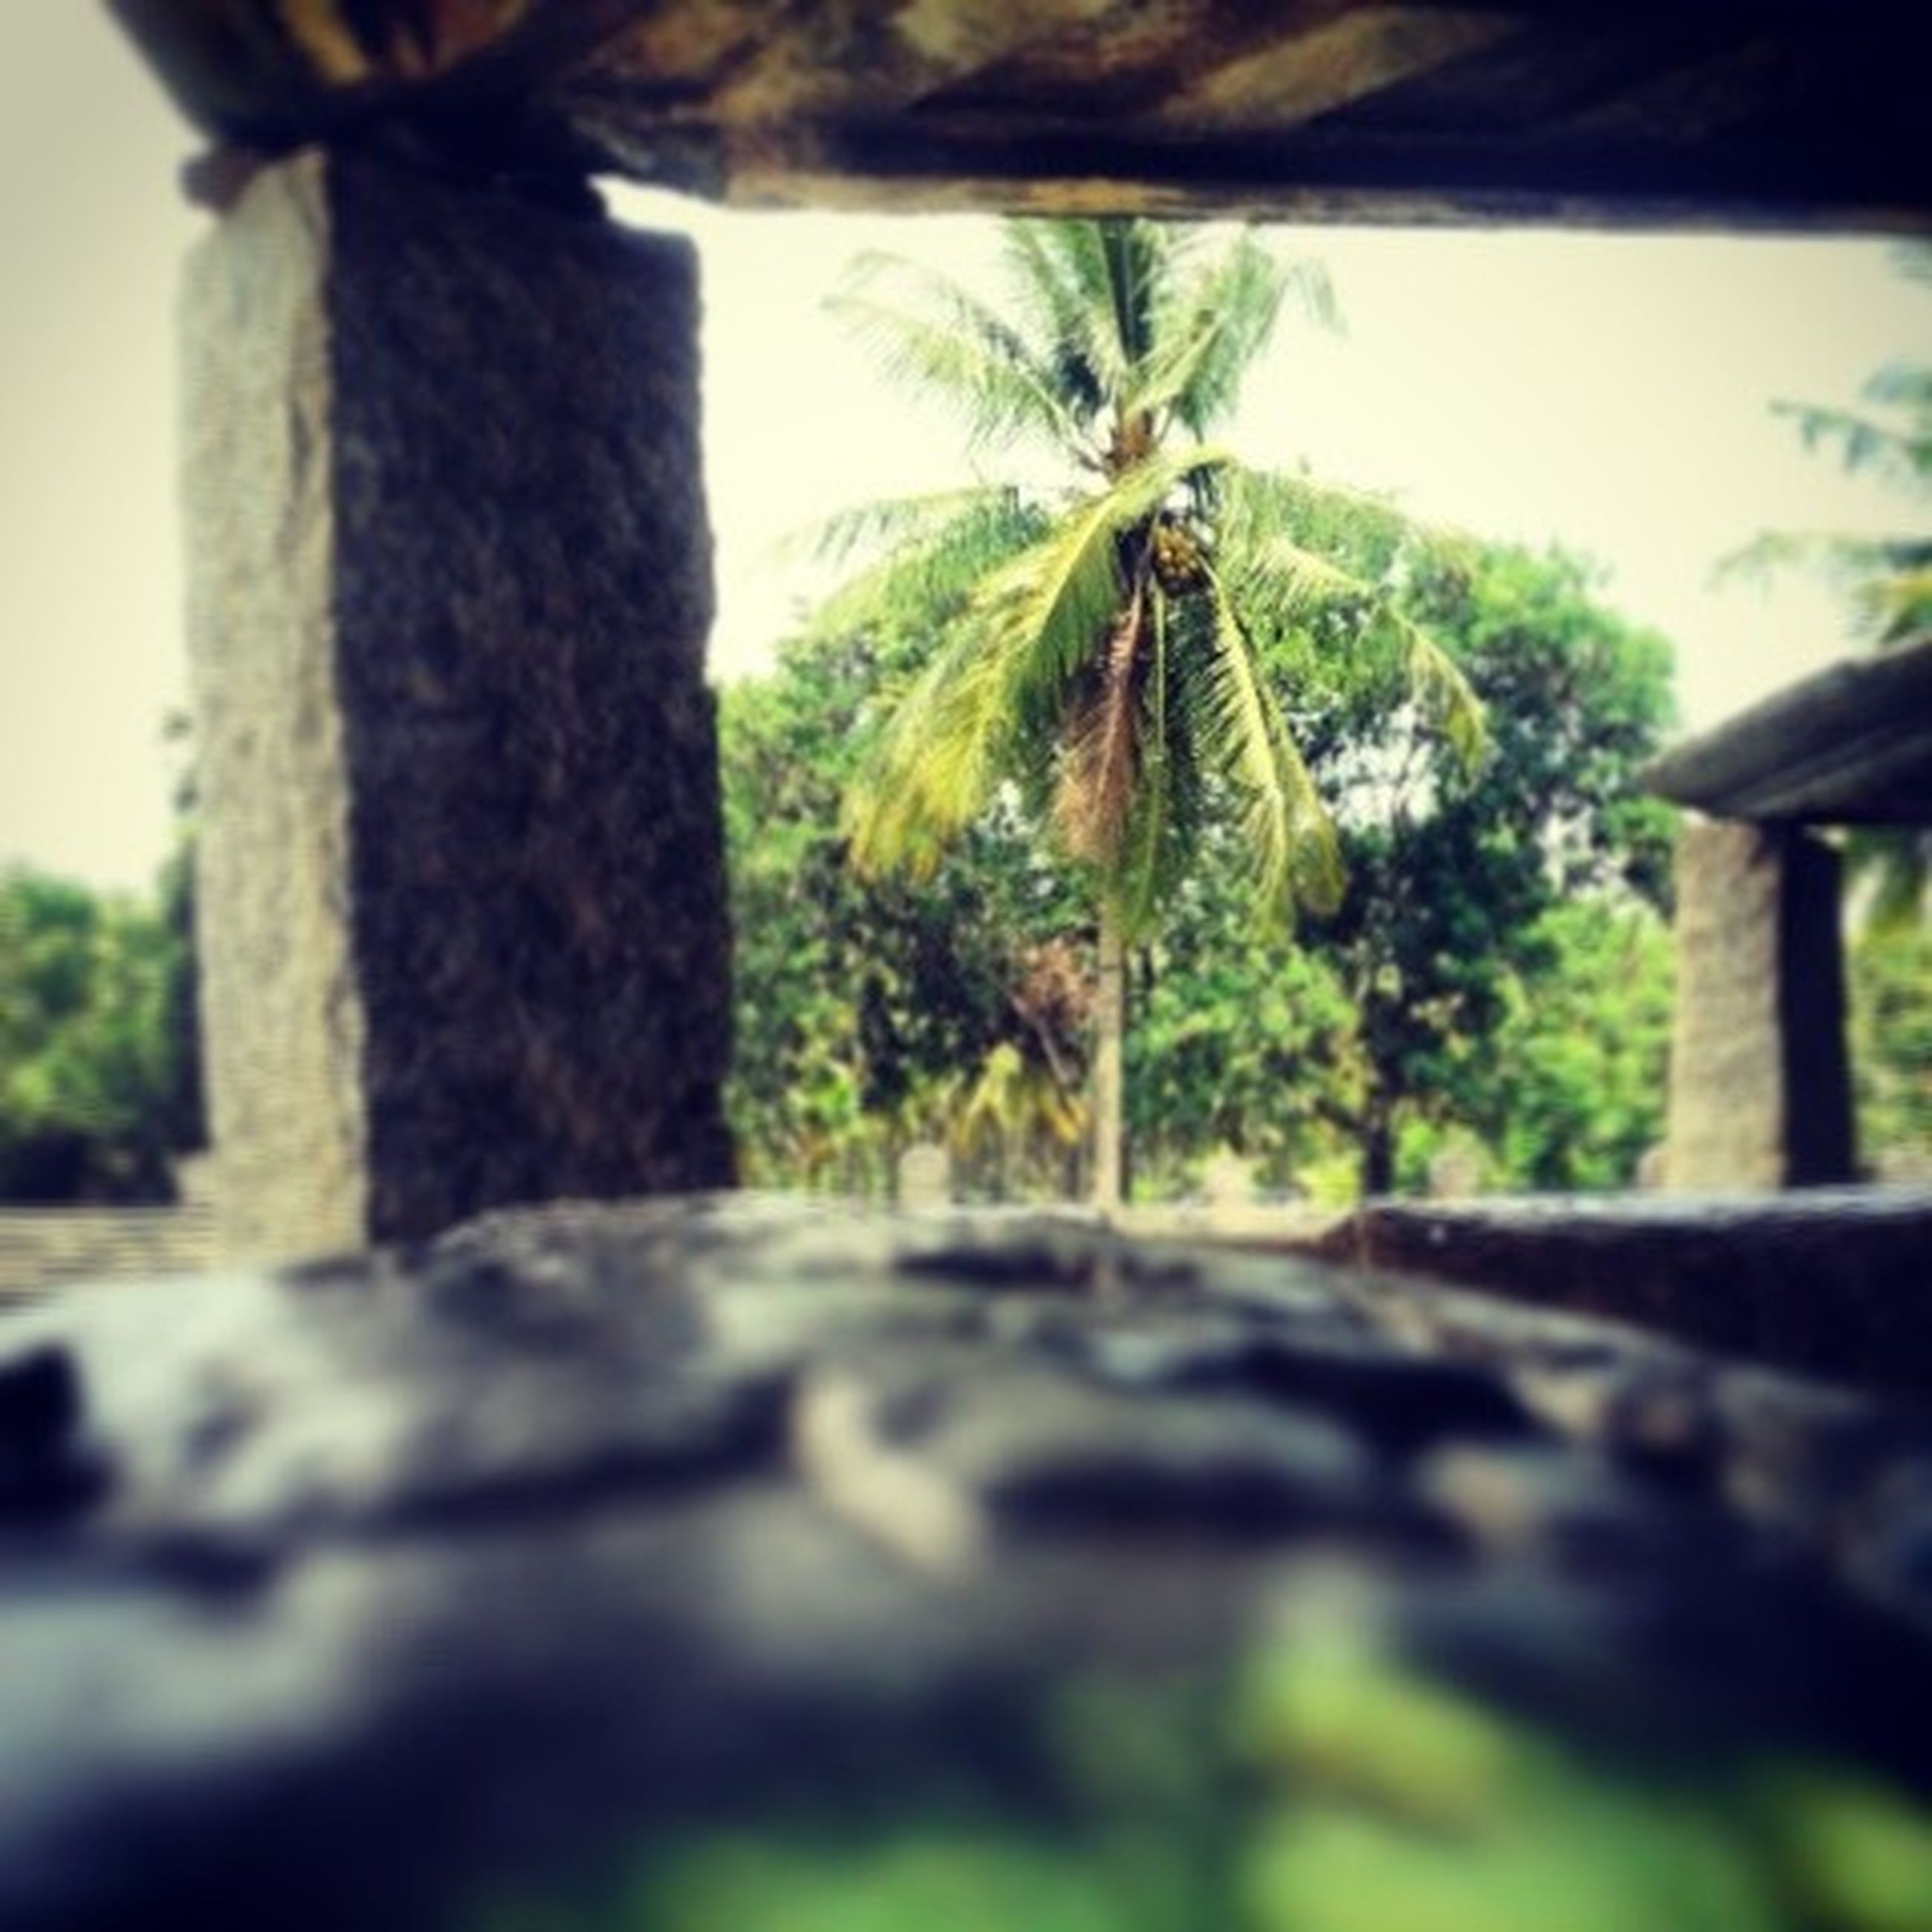 tree, growth, palm tree, green color, tree trunk, nature, selective focus, clear sky, tranquility, plant, day, focus on foreground, no people, sunlight, built structure, outdoors, sky, close-up, focus on background, growing